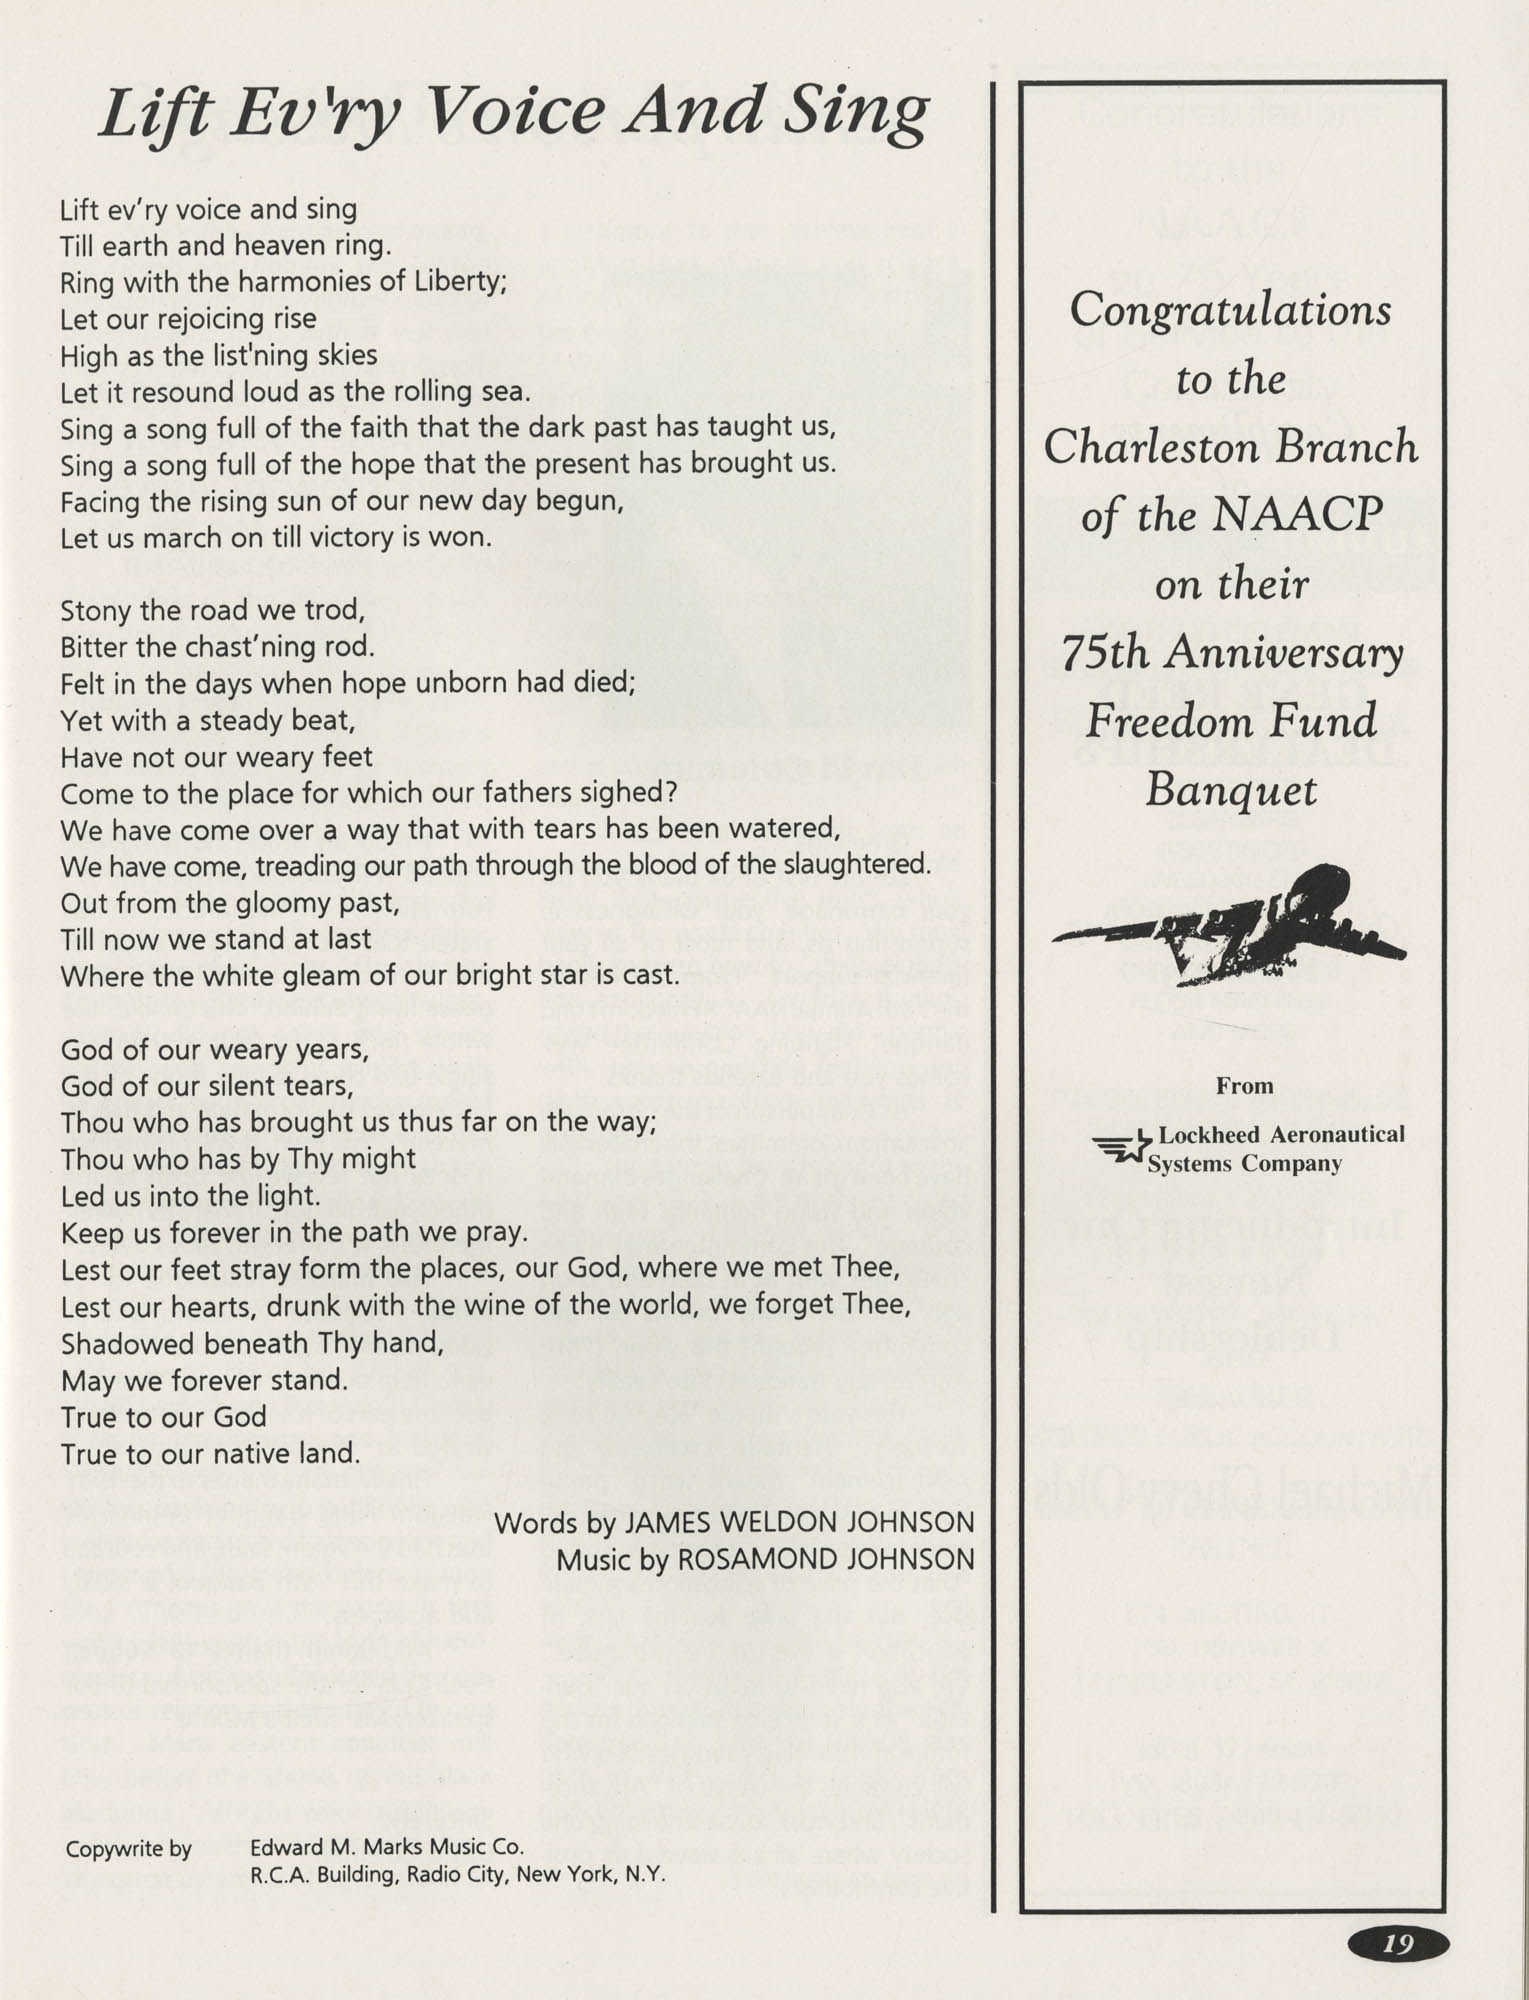 1991 Freedom Fund Magazine, Charleston Branch of the NAACP, Page 19